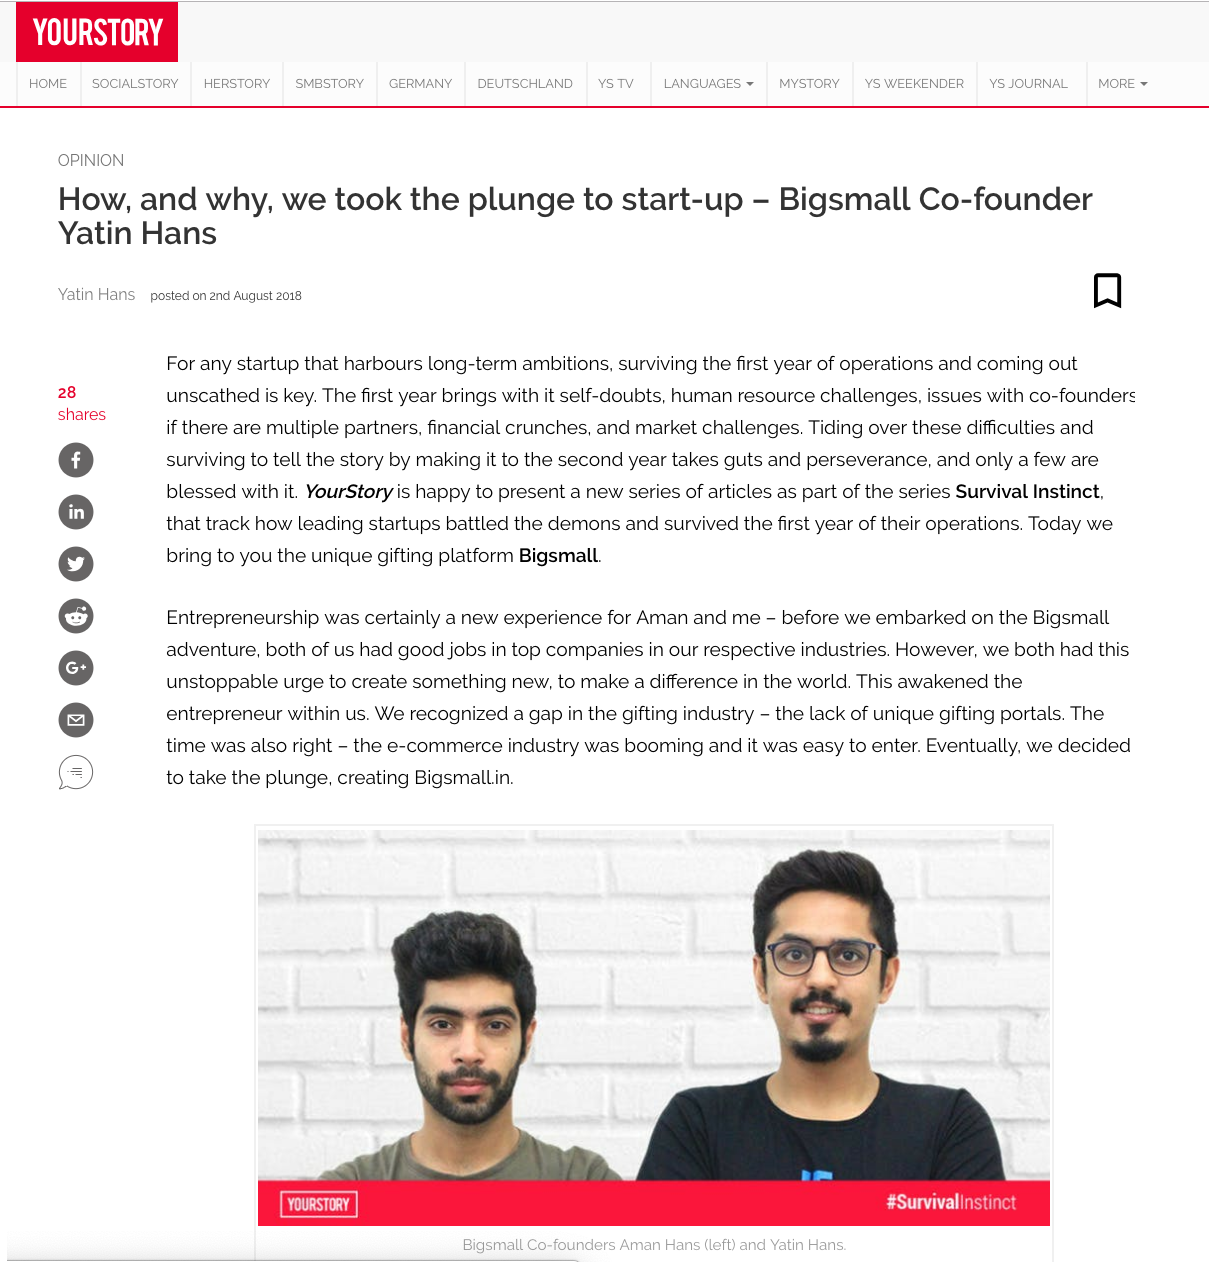 YourStory | How, and why, we took the plunge to start-up – Bigsmall Co-founder Yatin Hans